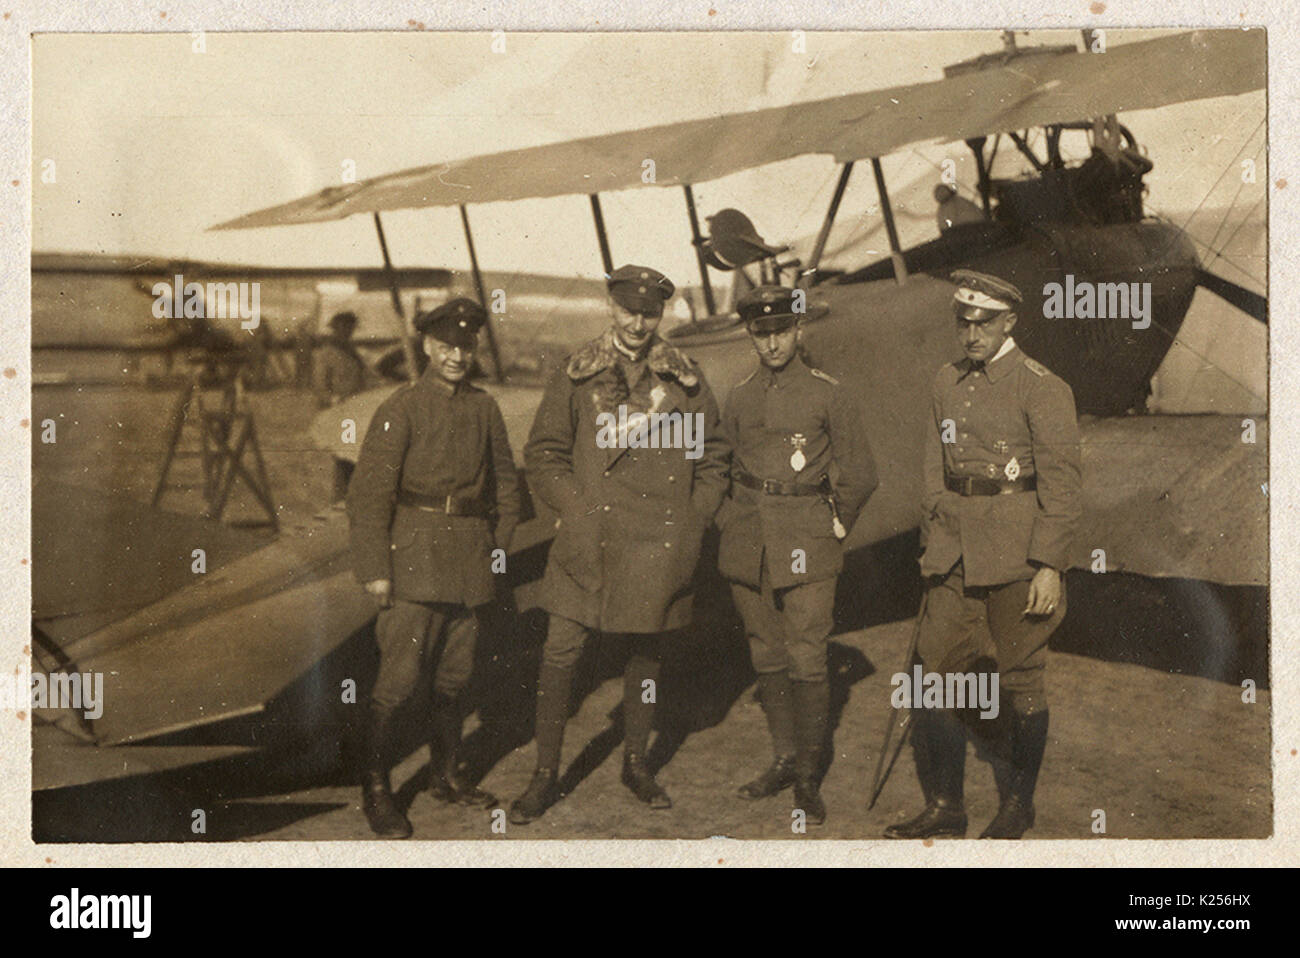 Four German pilots in front of biplane Stock Photo